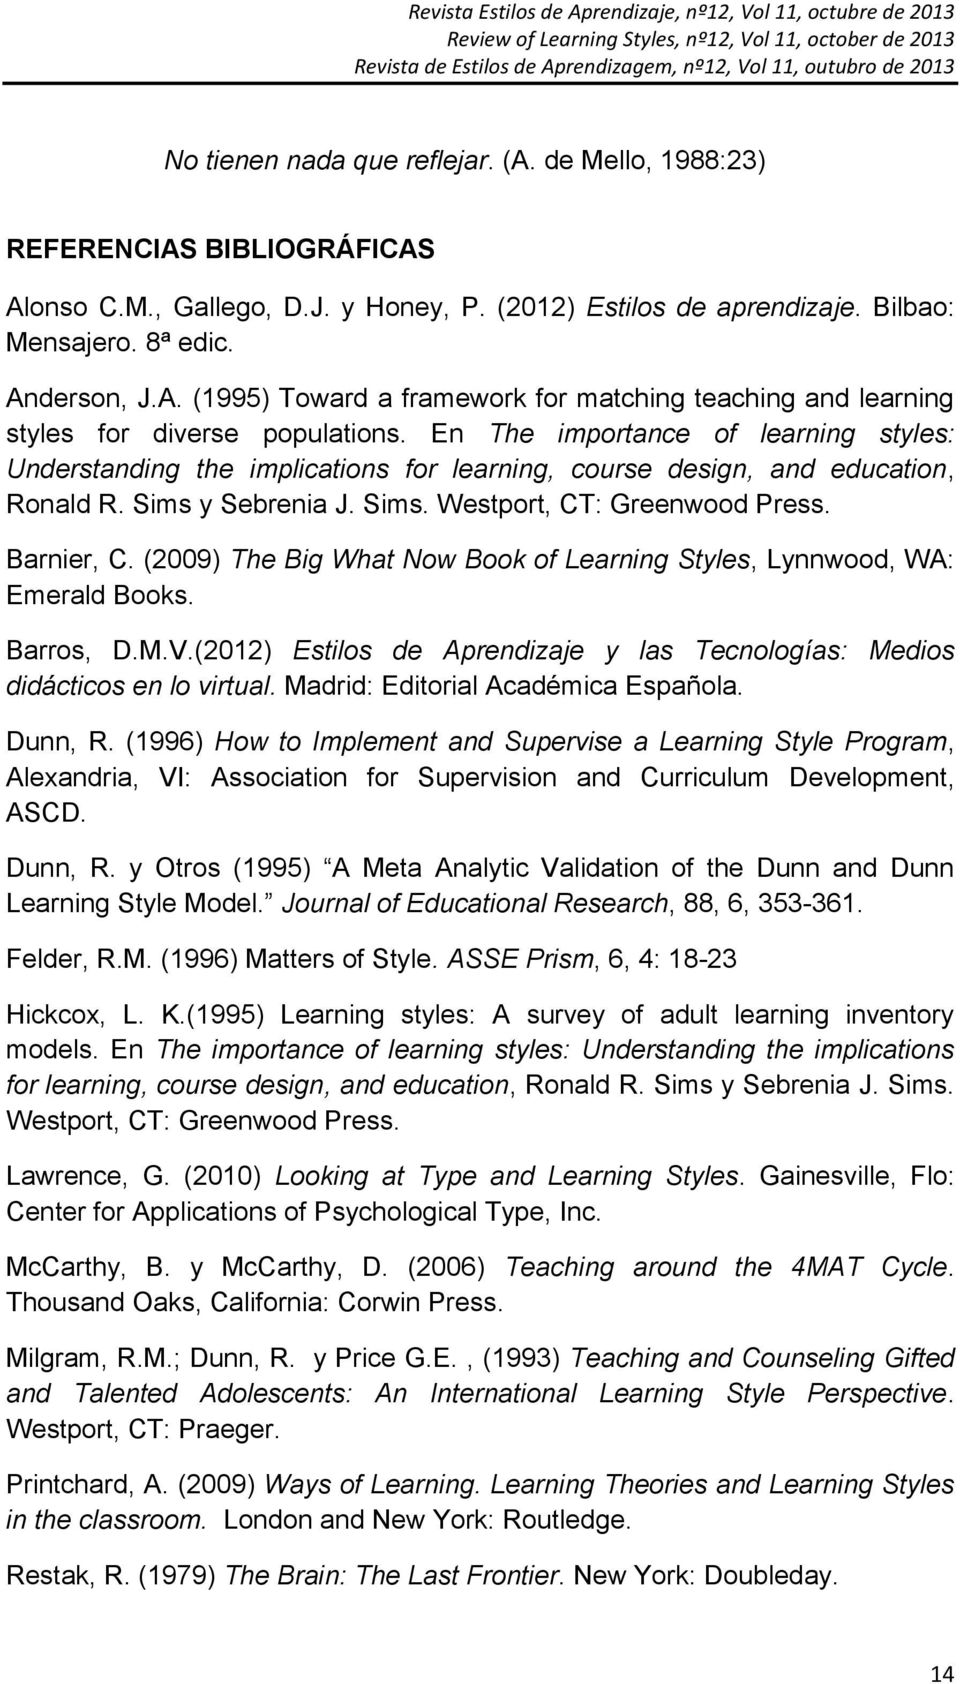 (2009) The Big What Now Book of Learning Styles, Lynnwood, WA: Emerald Books. Barros, D.M.V.(2012) Estilos de Aprendizaje y las Tecnologías: Medios didácticos en lo virtual.